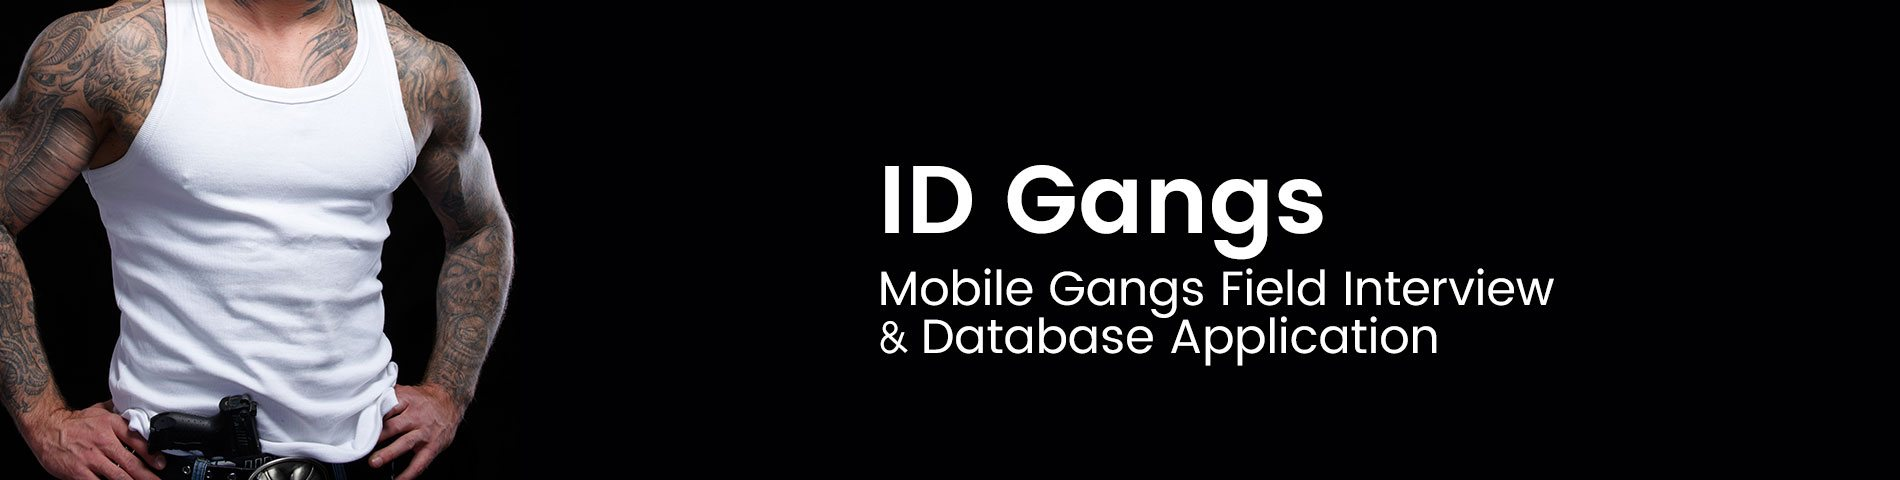 Gang Member Biometric Identification System